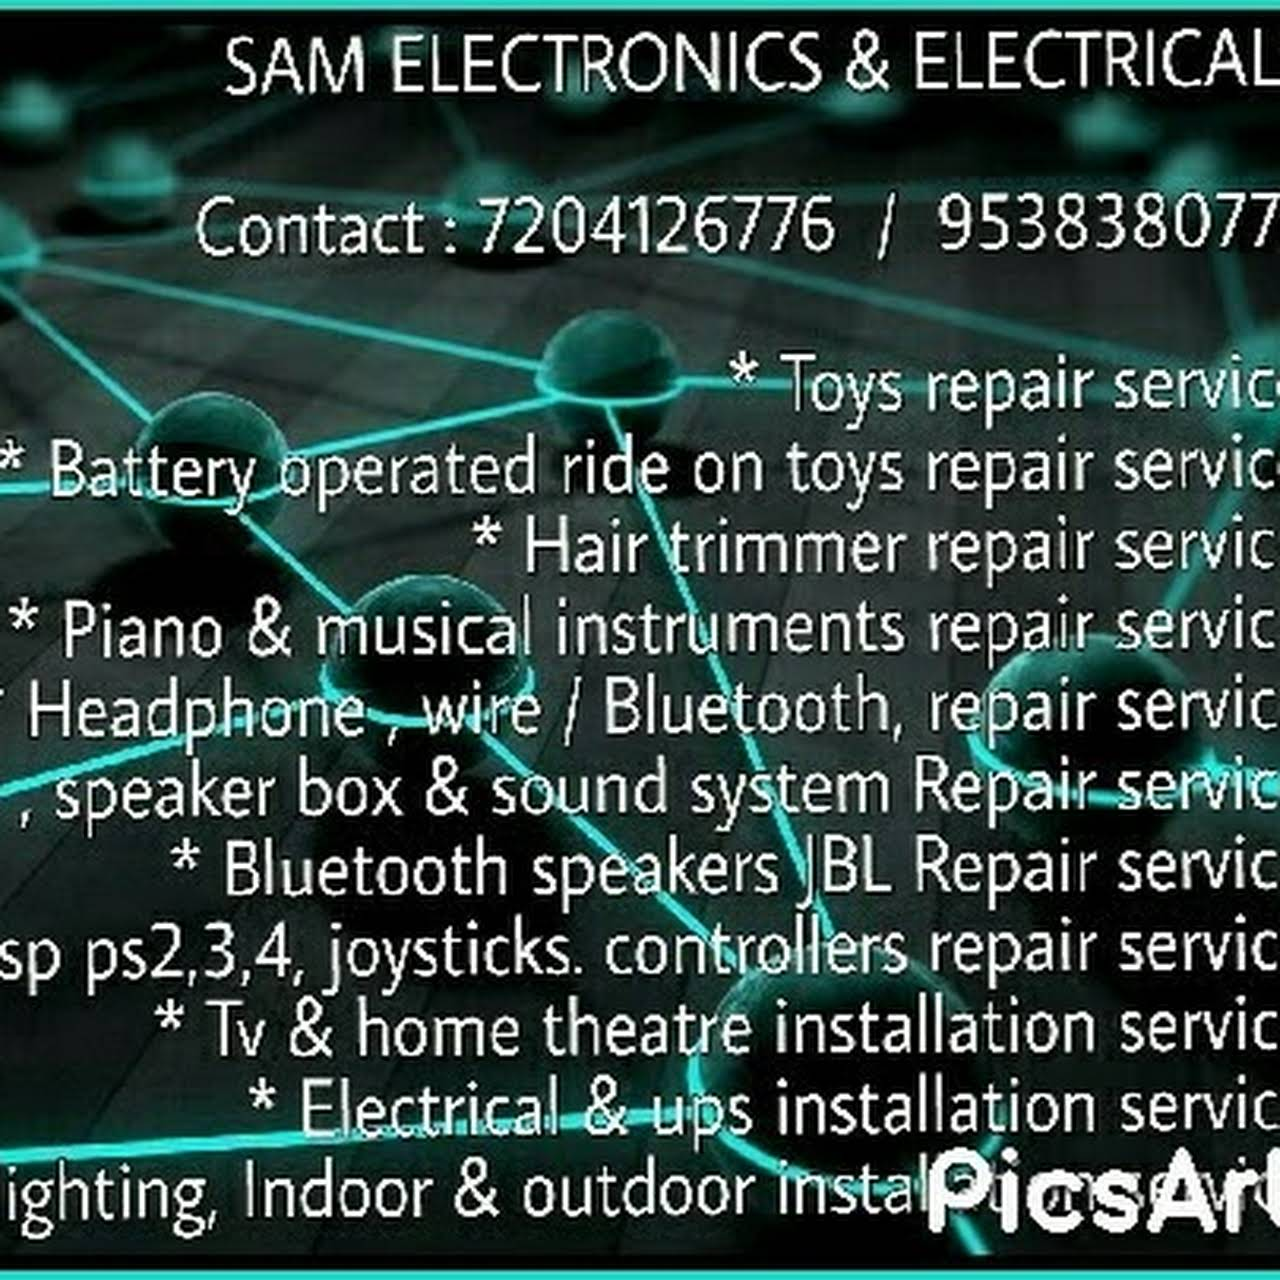 Sam Toy repair service, Ride on toys, Battery operated toys repair